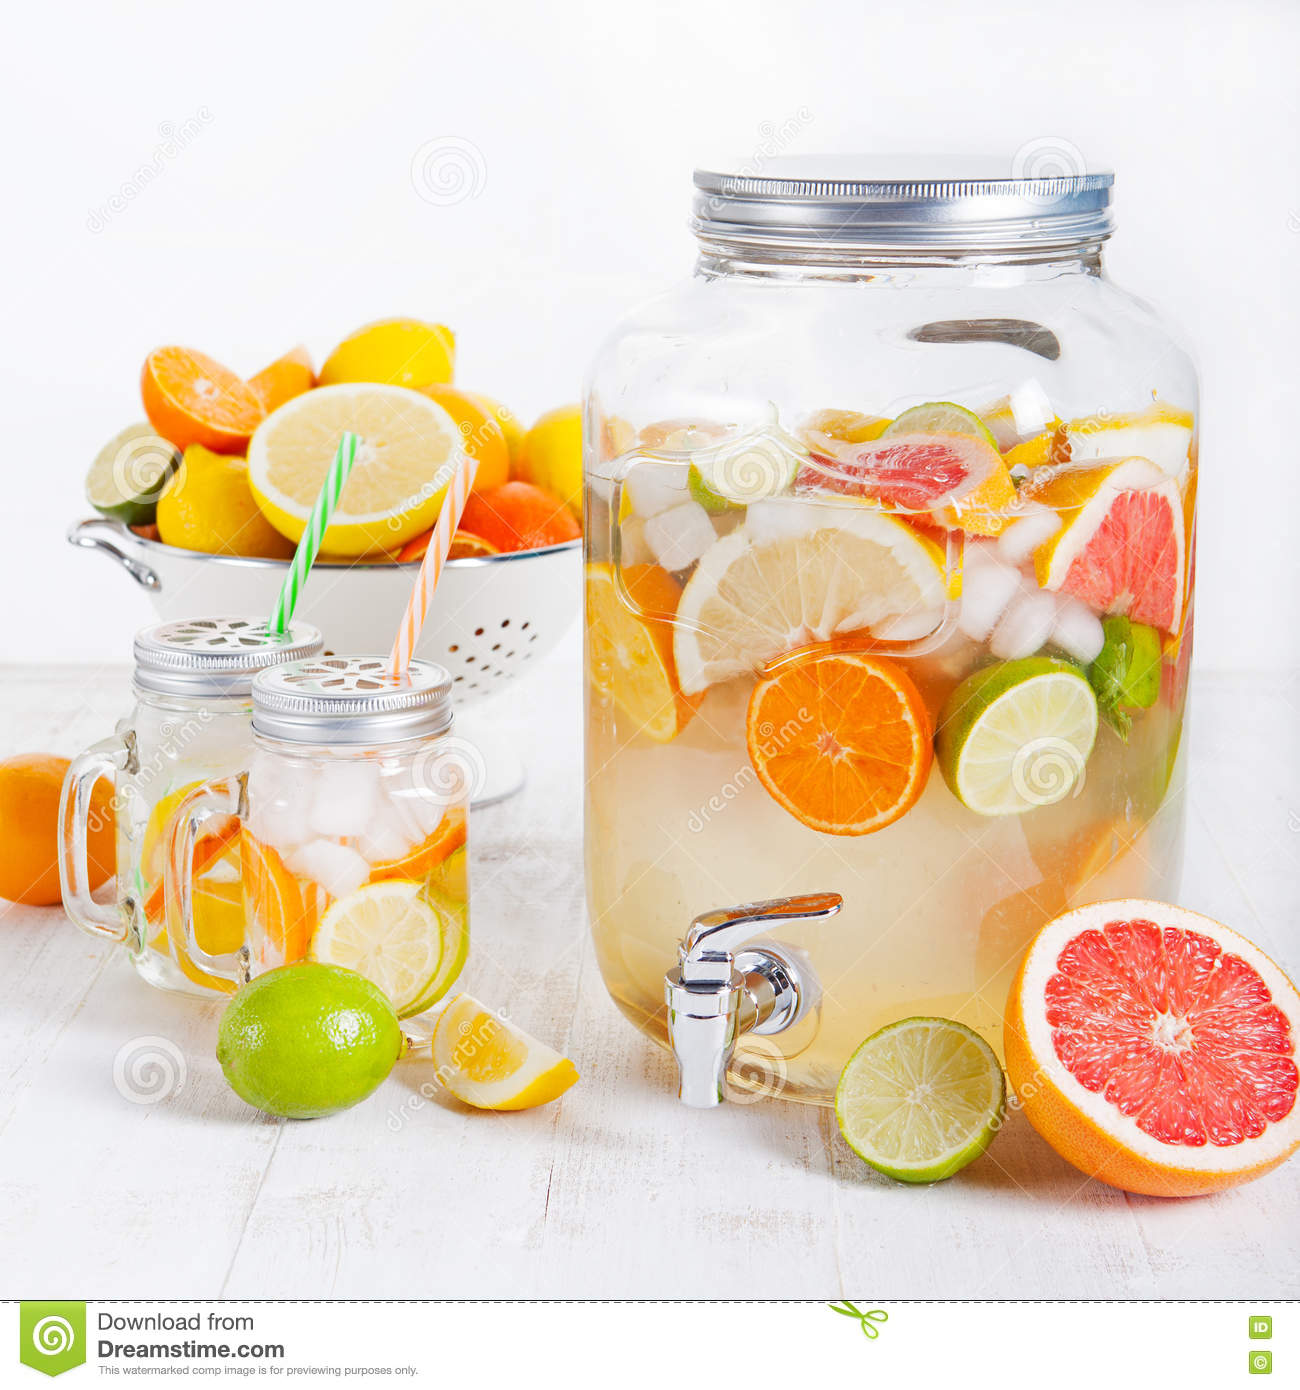 fruit water what are citrus fruits